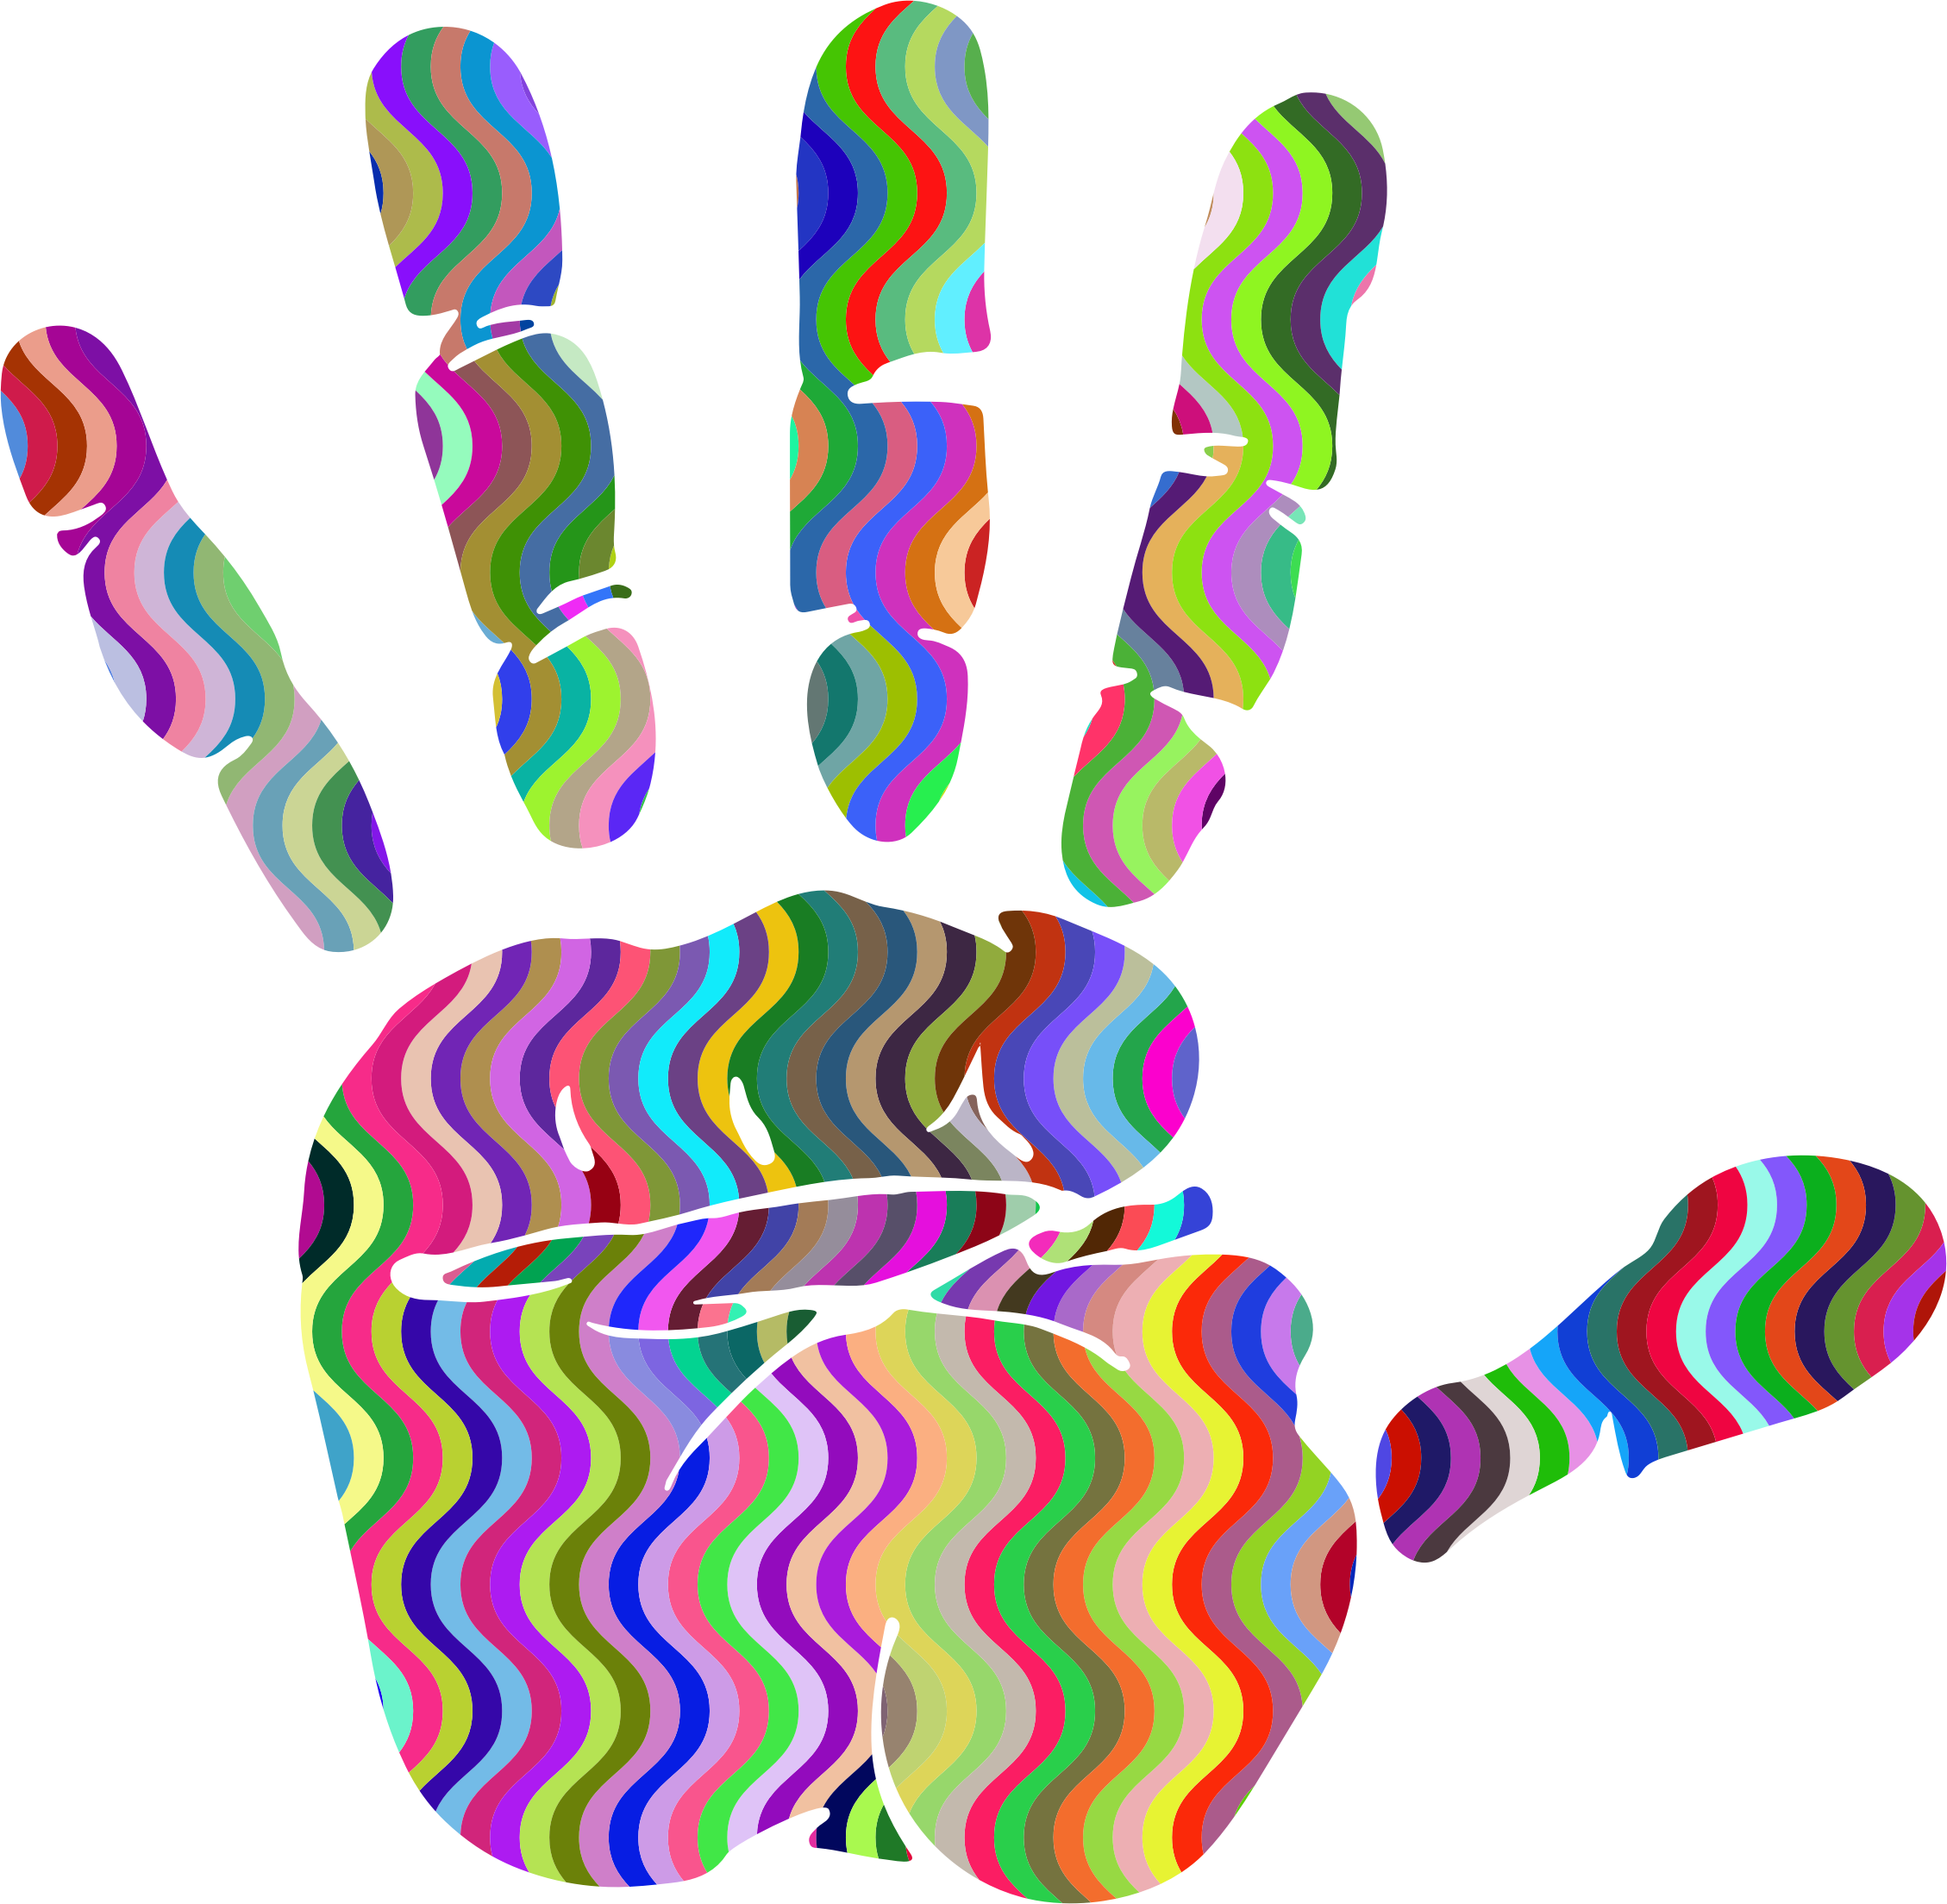 Handprint clipart human. Prismatic waves silhouette big